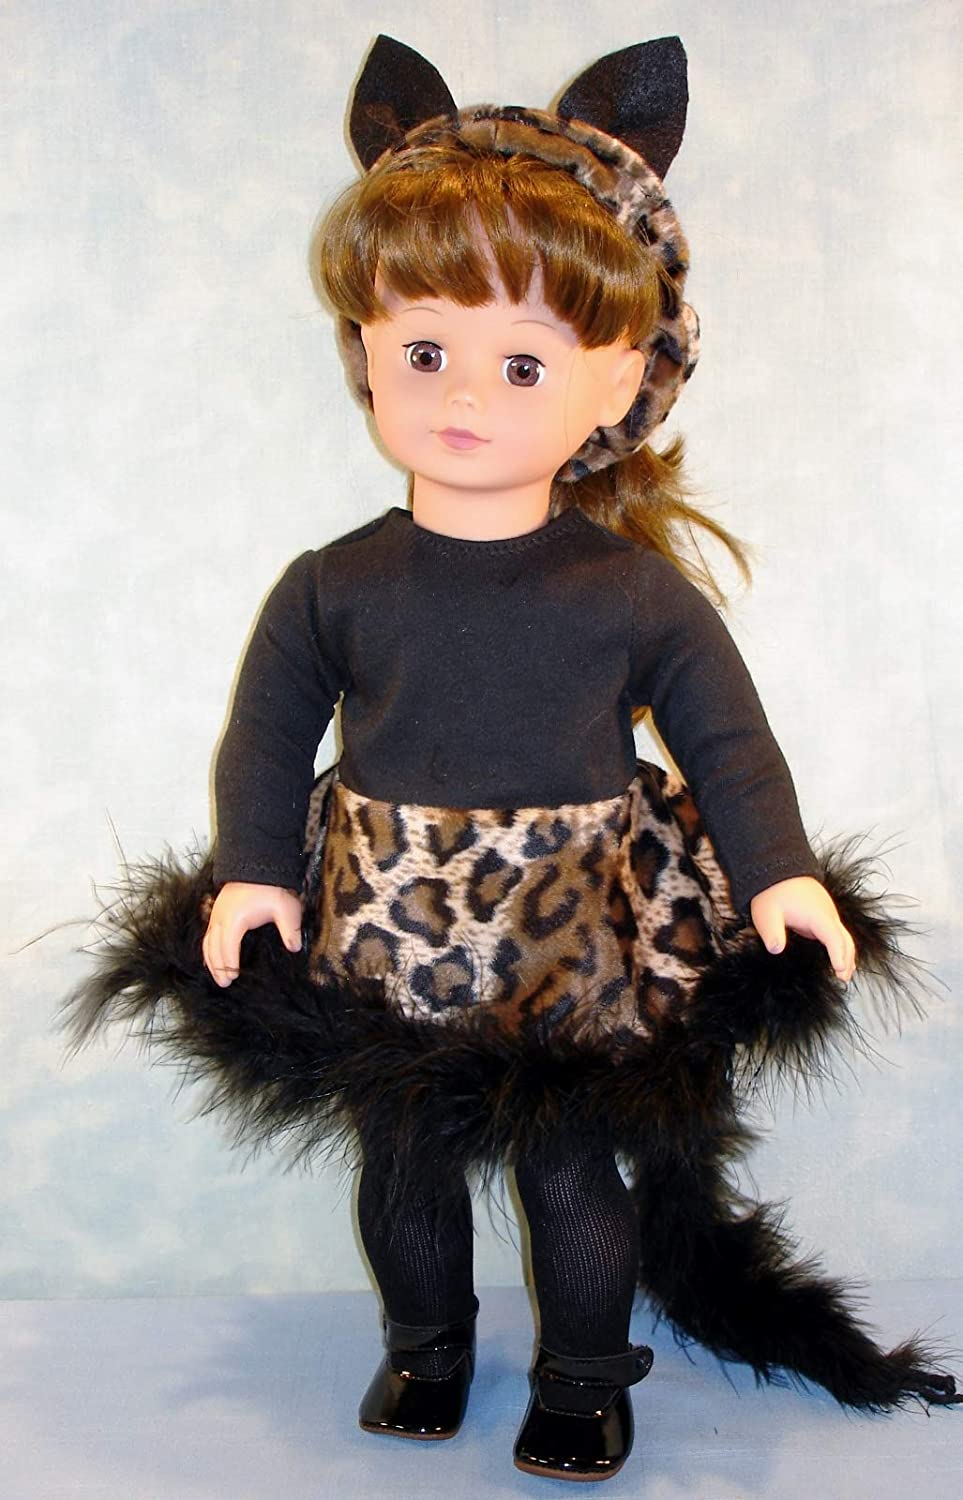 Black Cat Halloween Costume handmade by Jane Ellen to fit 18 inch dolls 18 Inch Doll Clothes